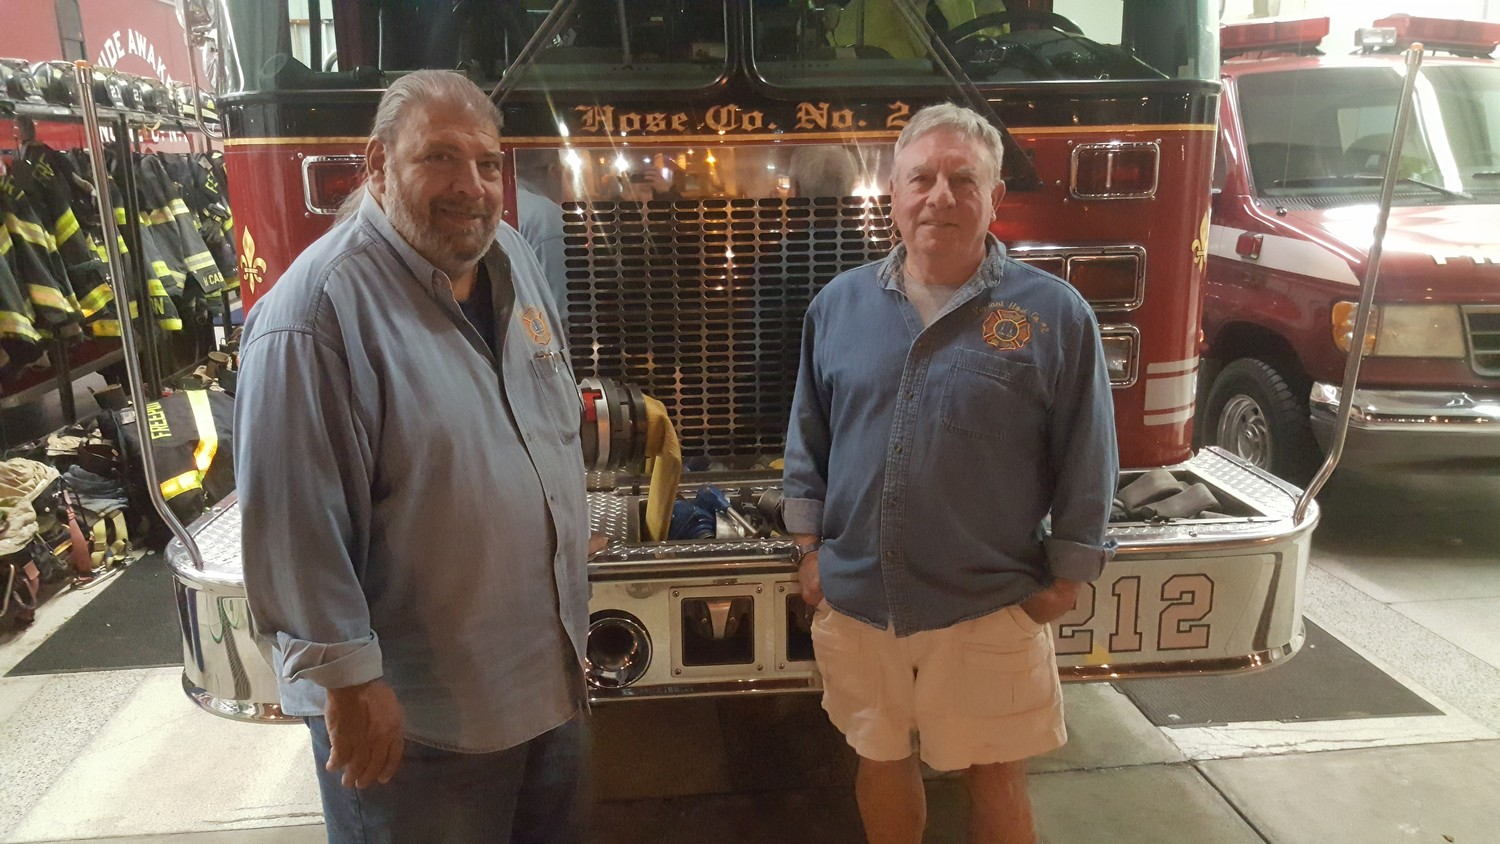 Freeport firefighters Anthony Basile, left, and Edward Martin joined Hose Co. No. 2 in 1968.